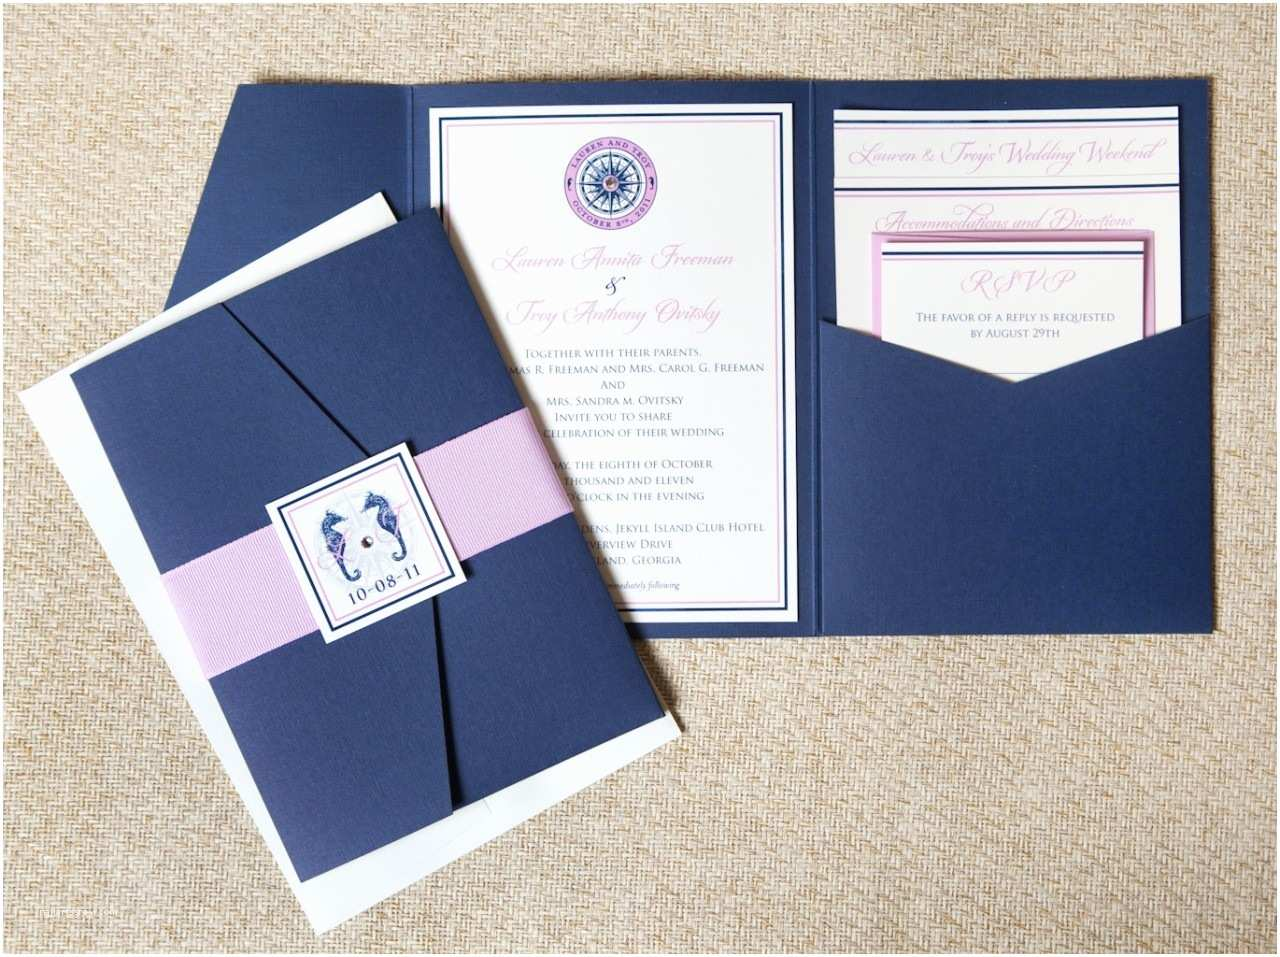 Nautical themed Wedding Invitations Nautical Wedding Invitations for A Nautical Wedding theme